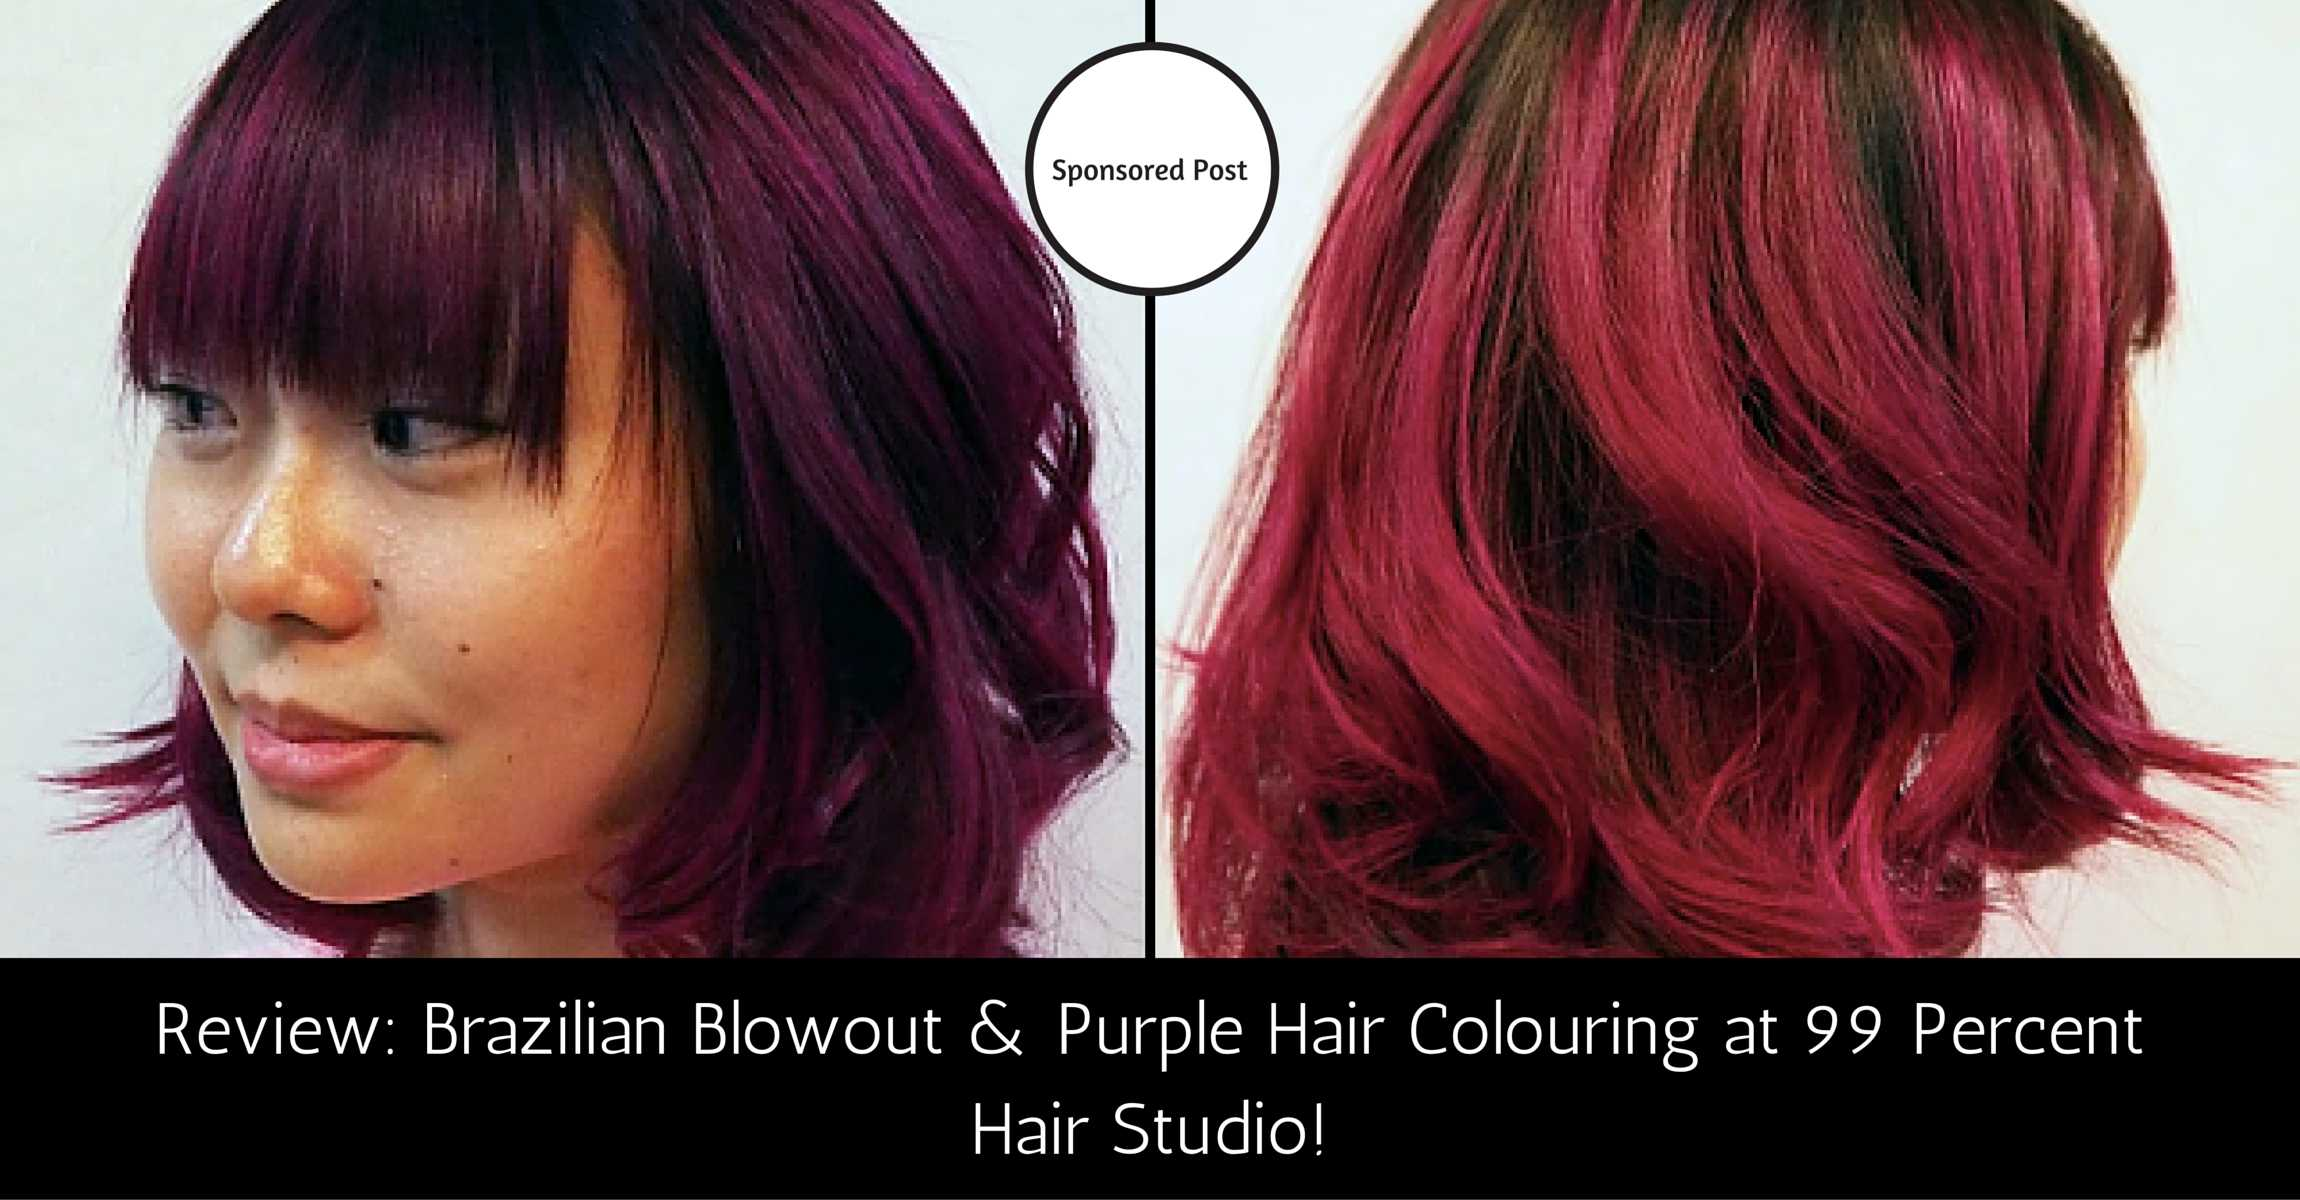 Brazilian Blowout and Purple Hair Colouring at 99 Percent Hair Studio!